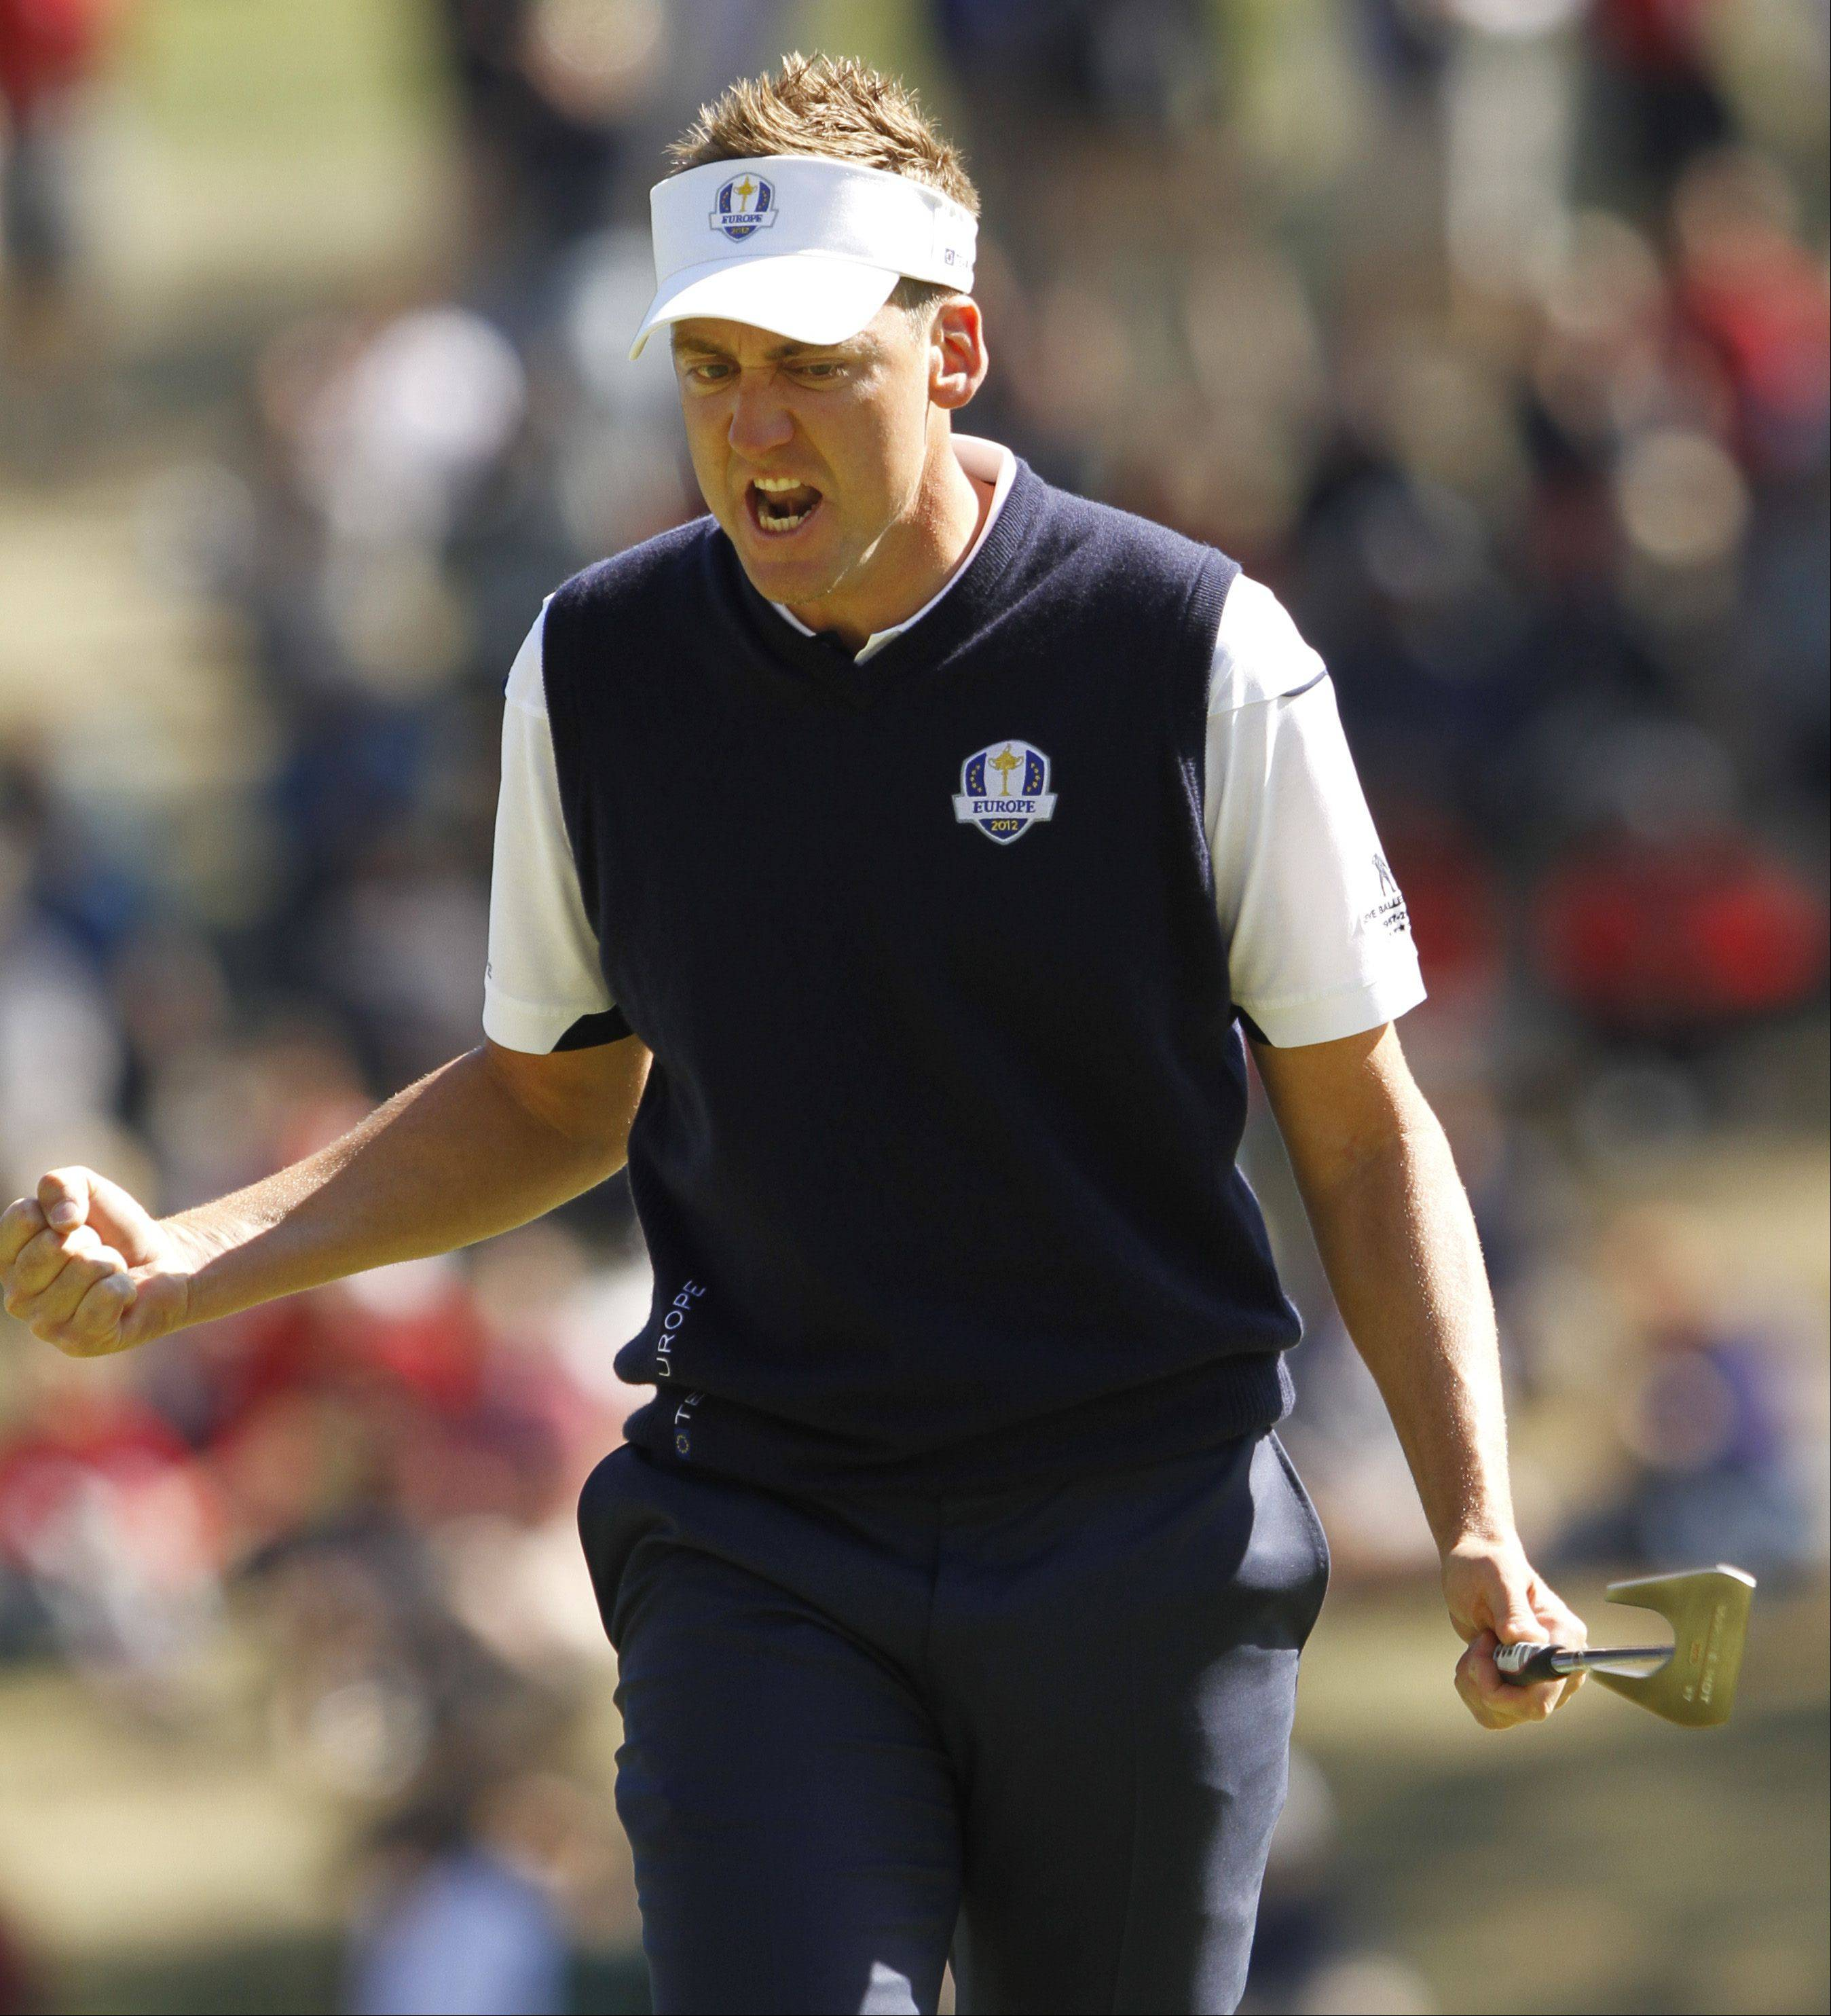 Ian Poulter, who won his singles match against Webb Simpson, gets fired up after making a putt Sunday afternoon. Poulter went 4-0-0 in this Ryder Cup.